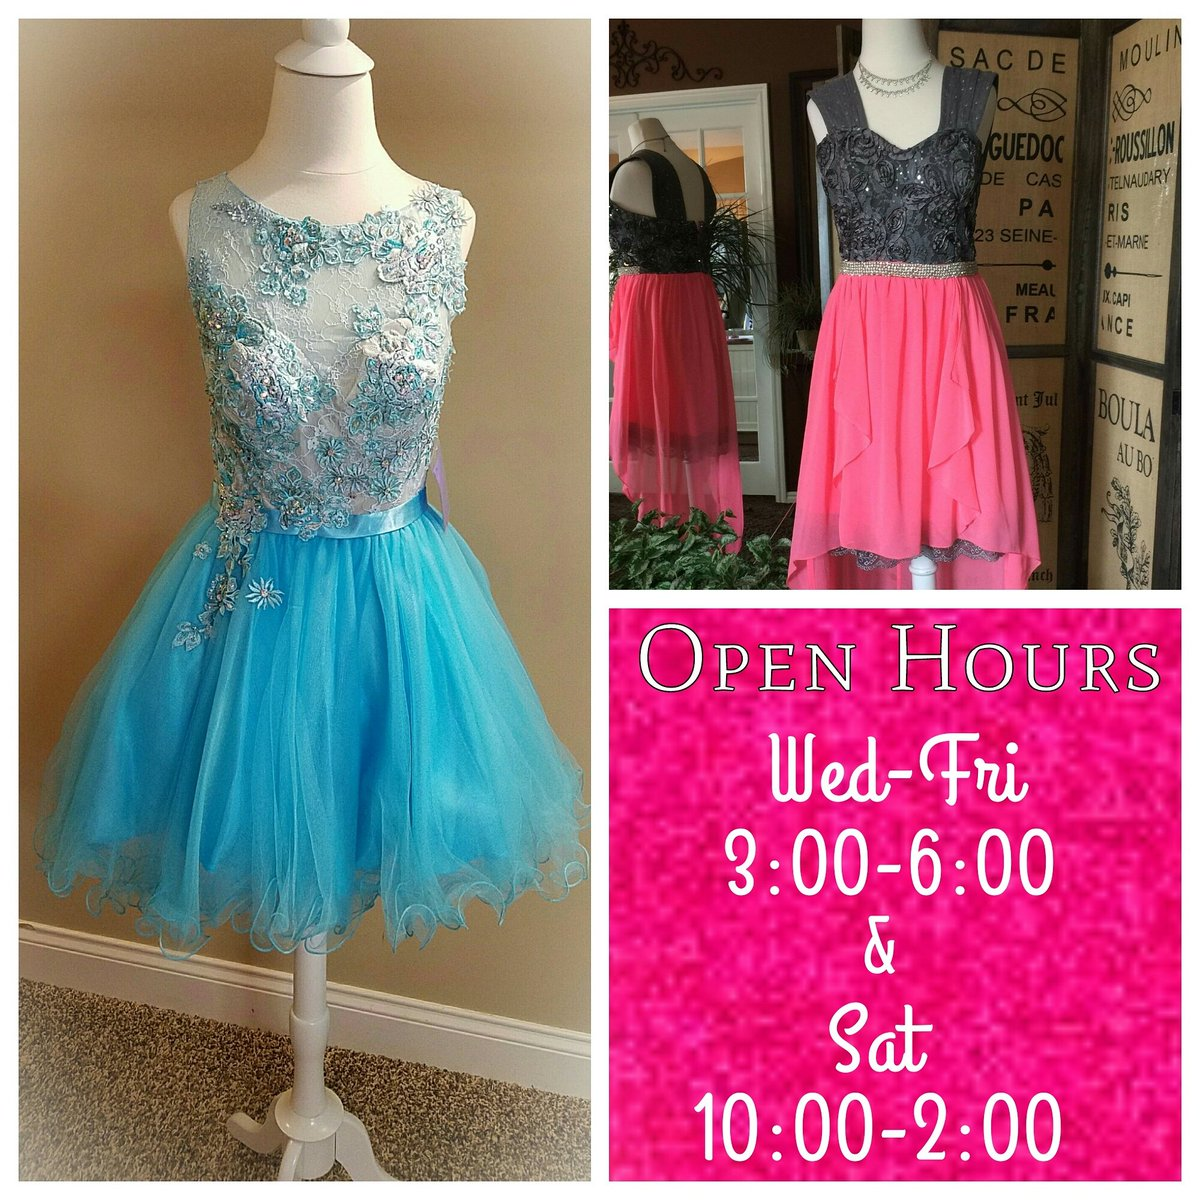 The dress garden - The Dress Garden On Twitter We Still Have Tons Of Beautiful Dresses Available For Homecoming Come In And Reserve Your Dress Today